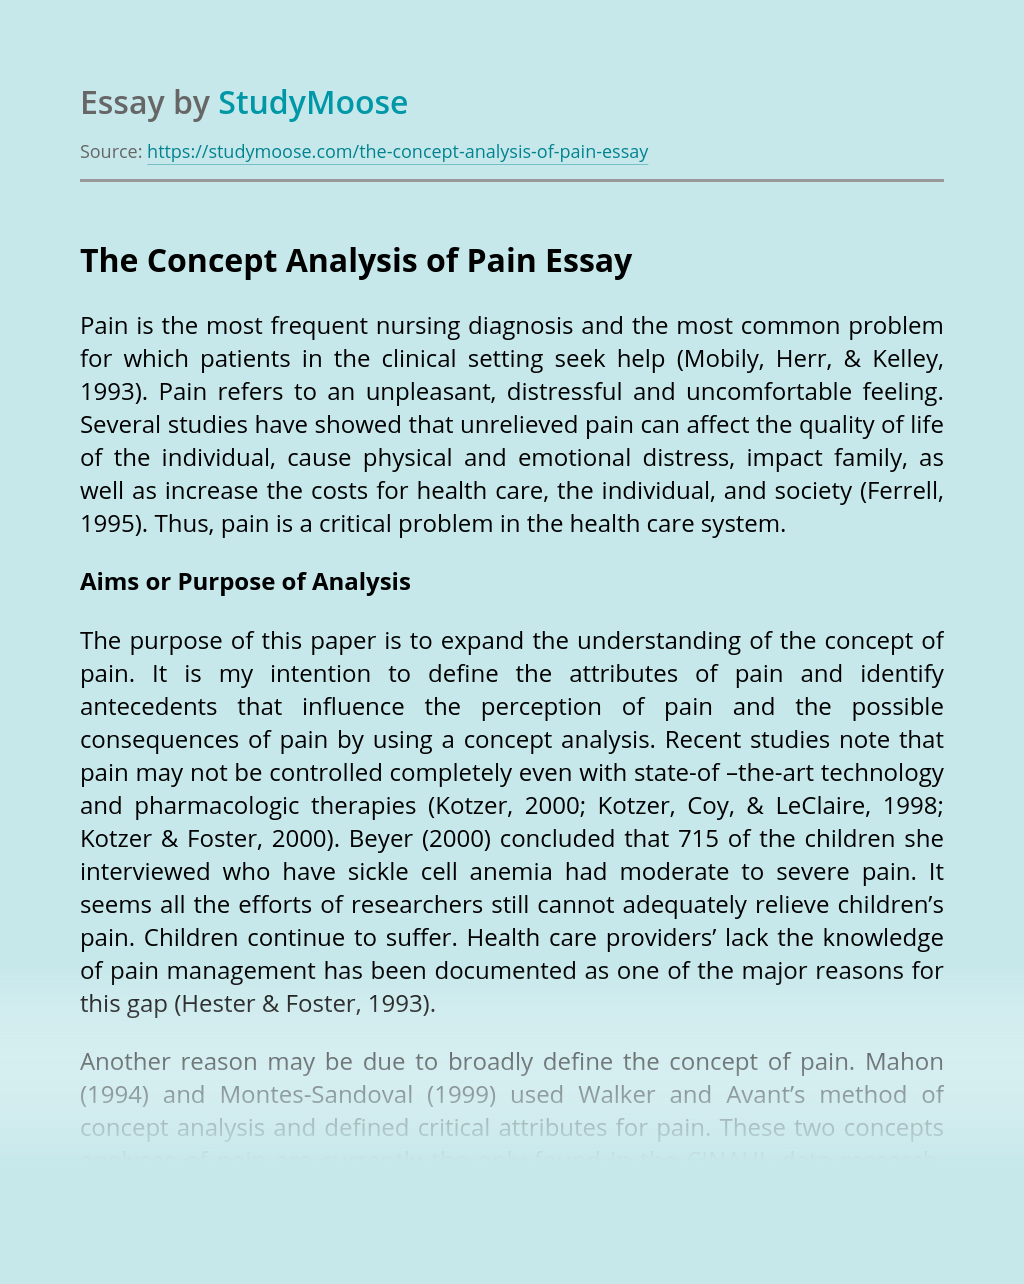 The Concept Analysis of Pain